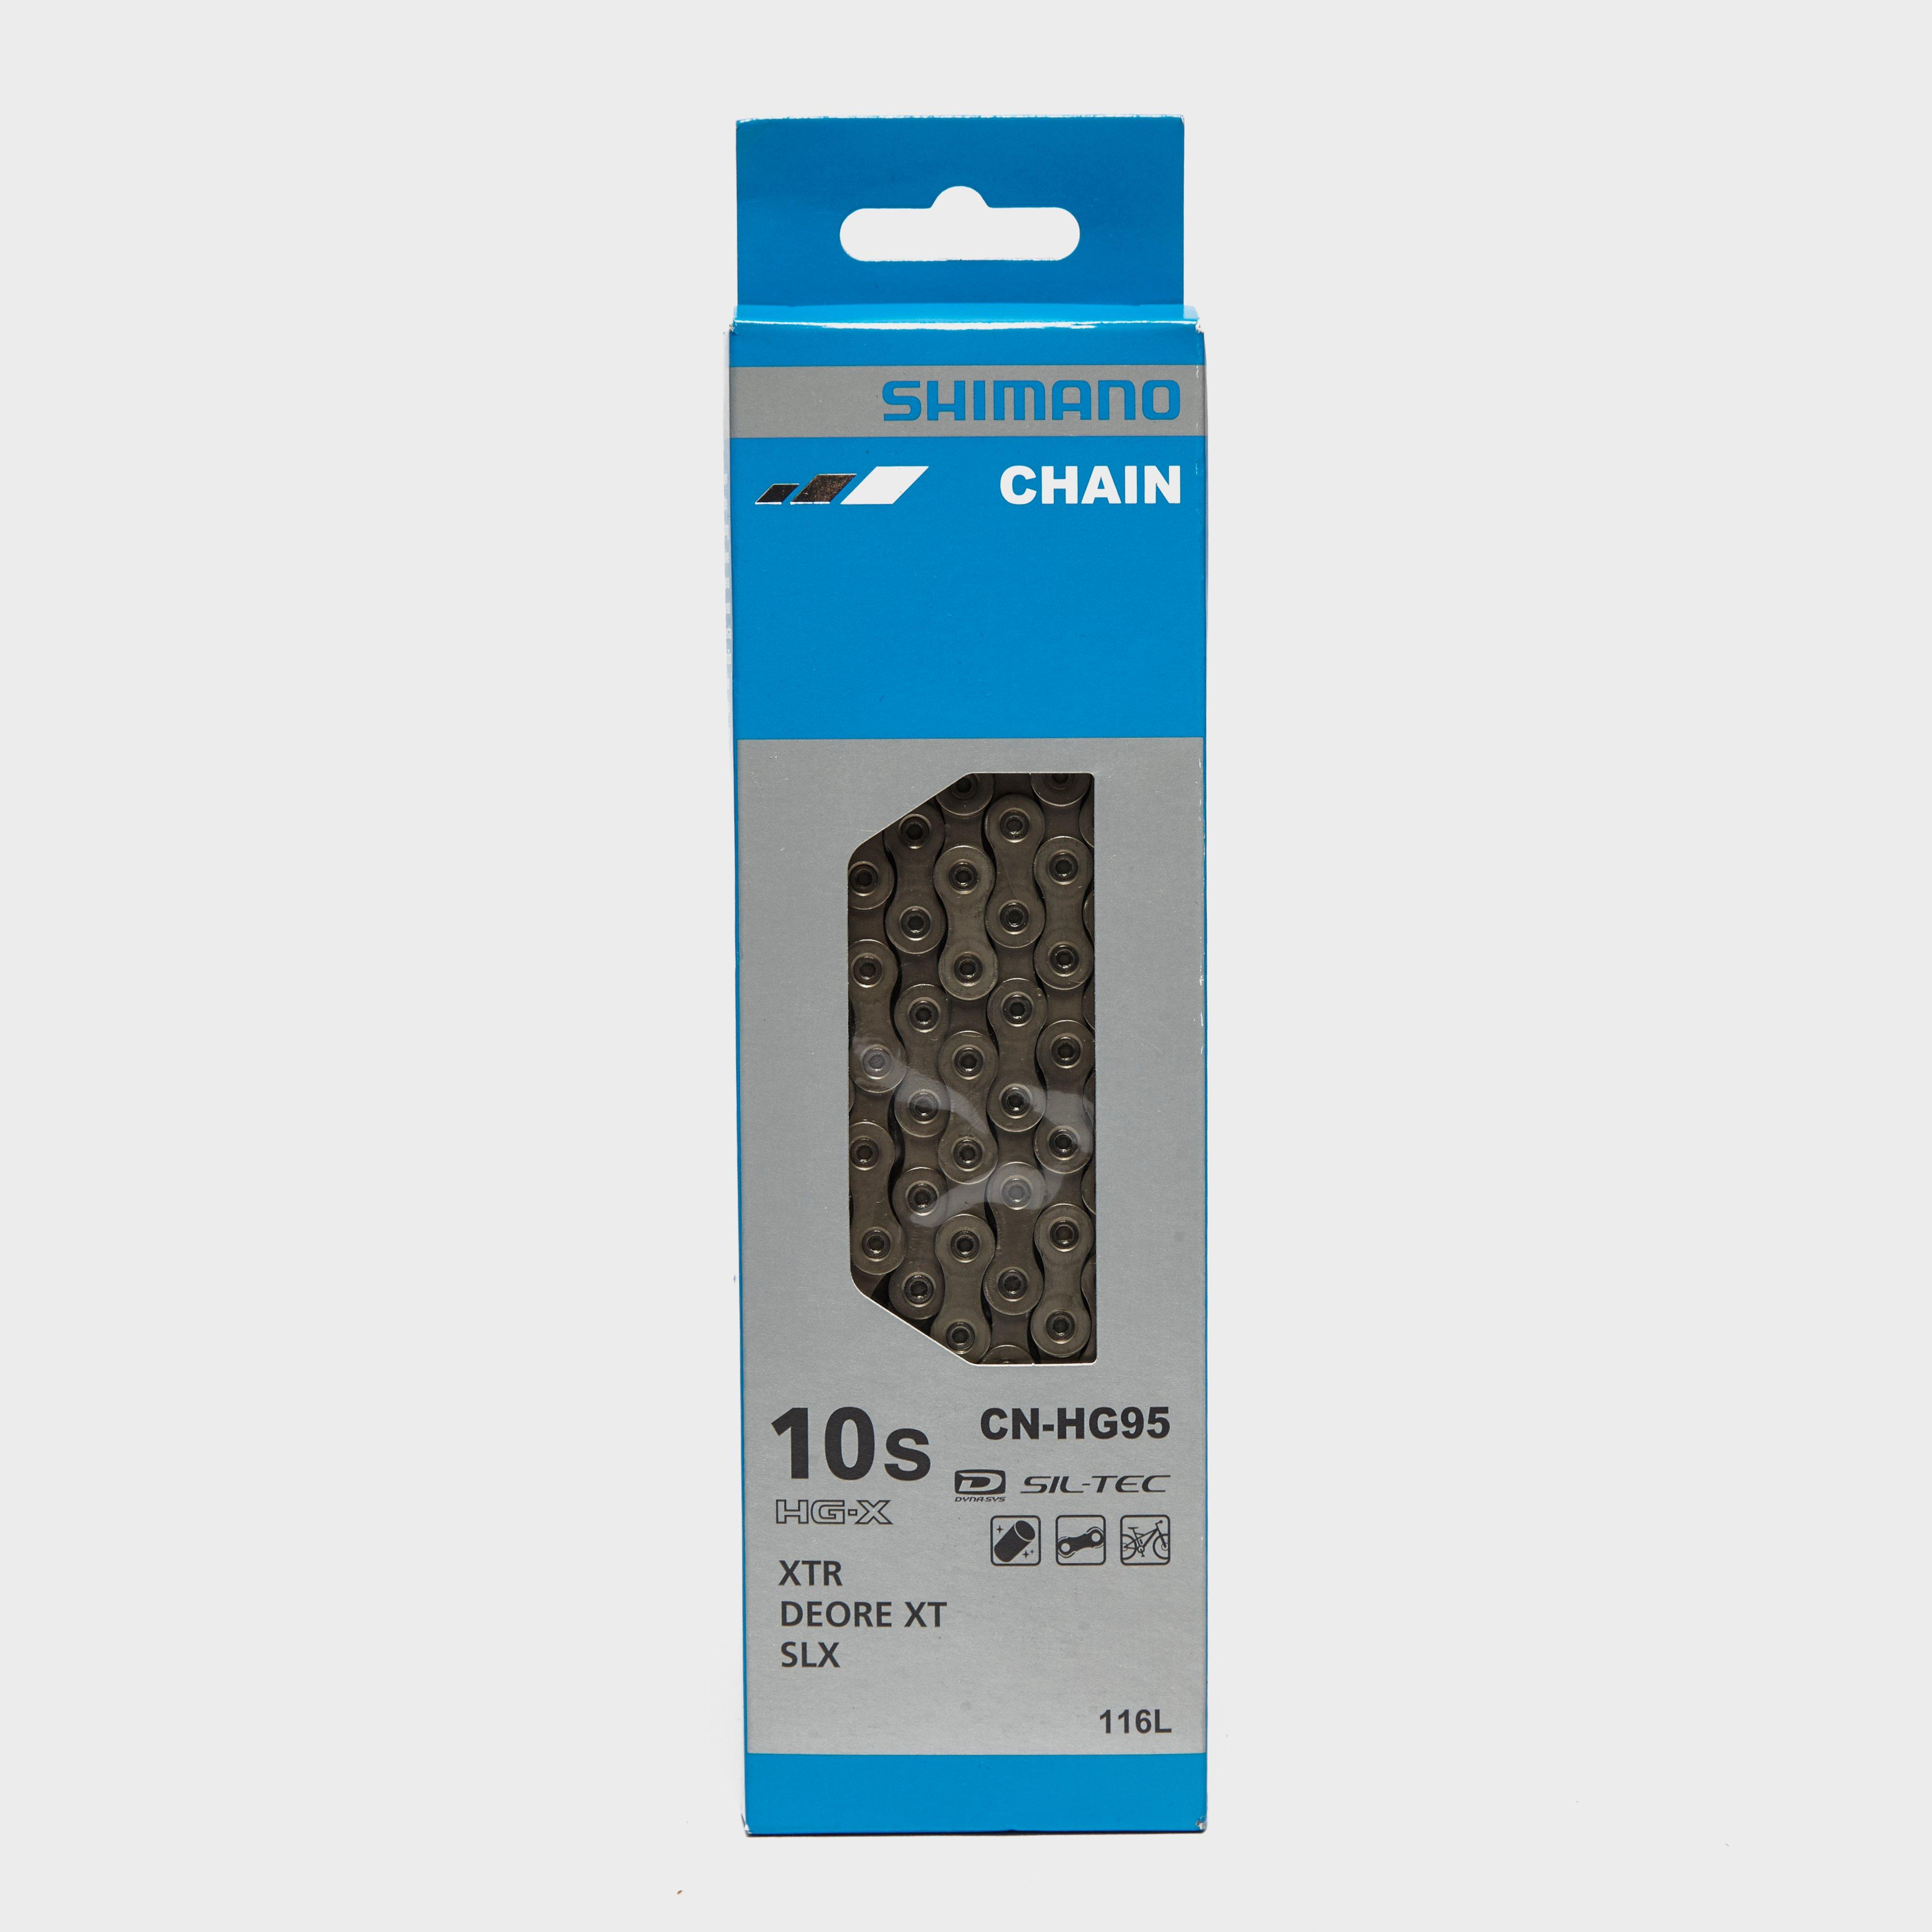 Shimano Shimano 10 Speed CN-HG95 10 Speed HG-X Chain - Assorted, Assorted